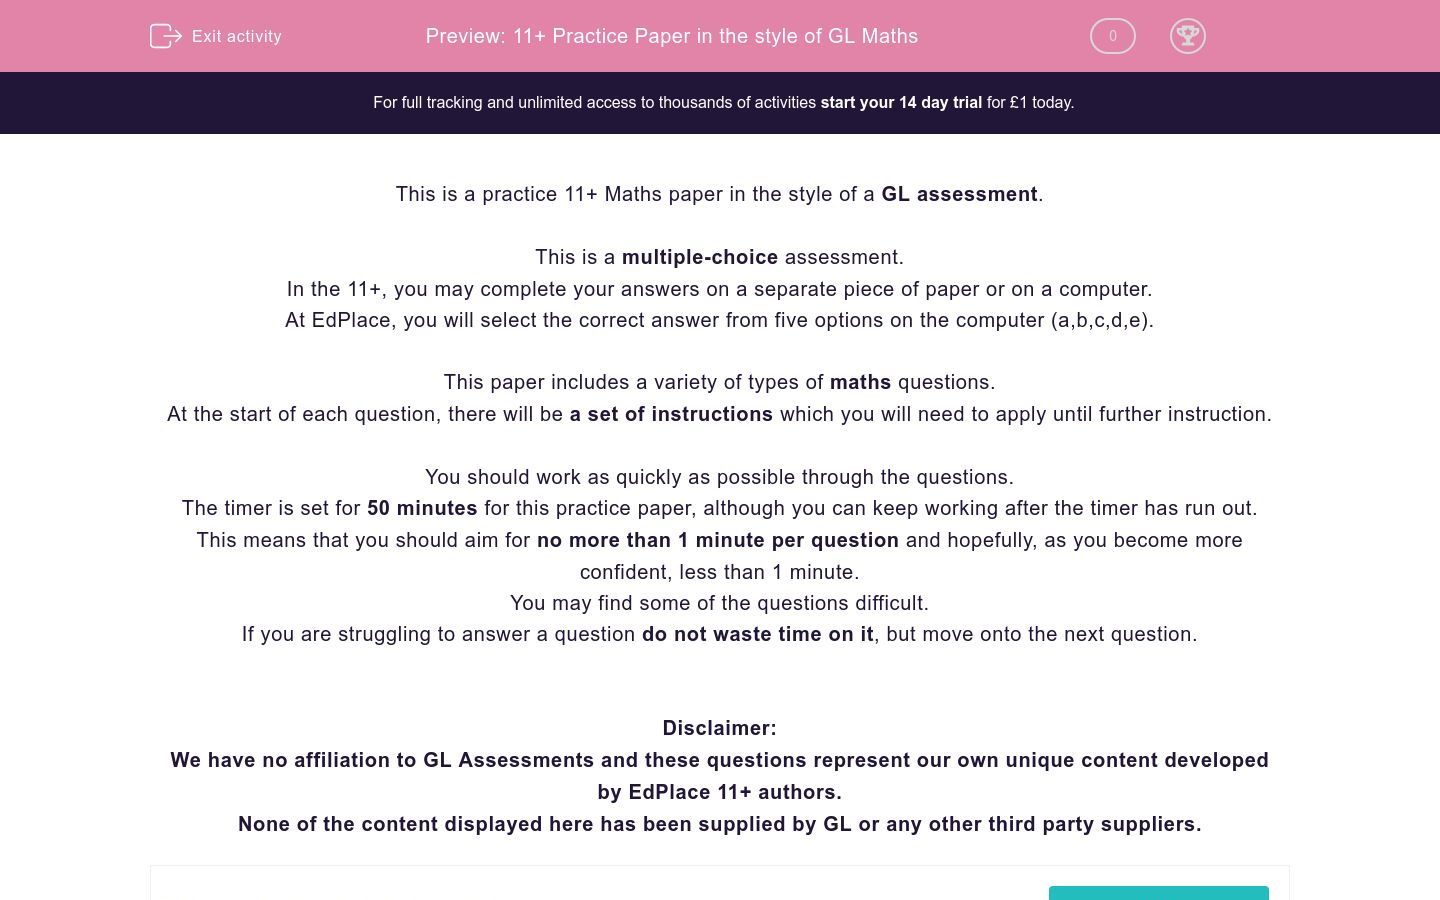 '11+ Practice Paper in the style of GL Maths' worksheet